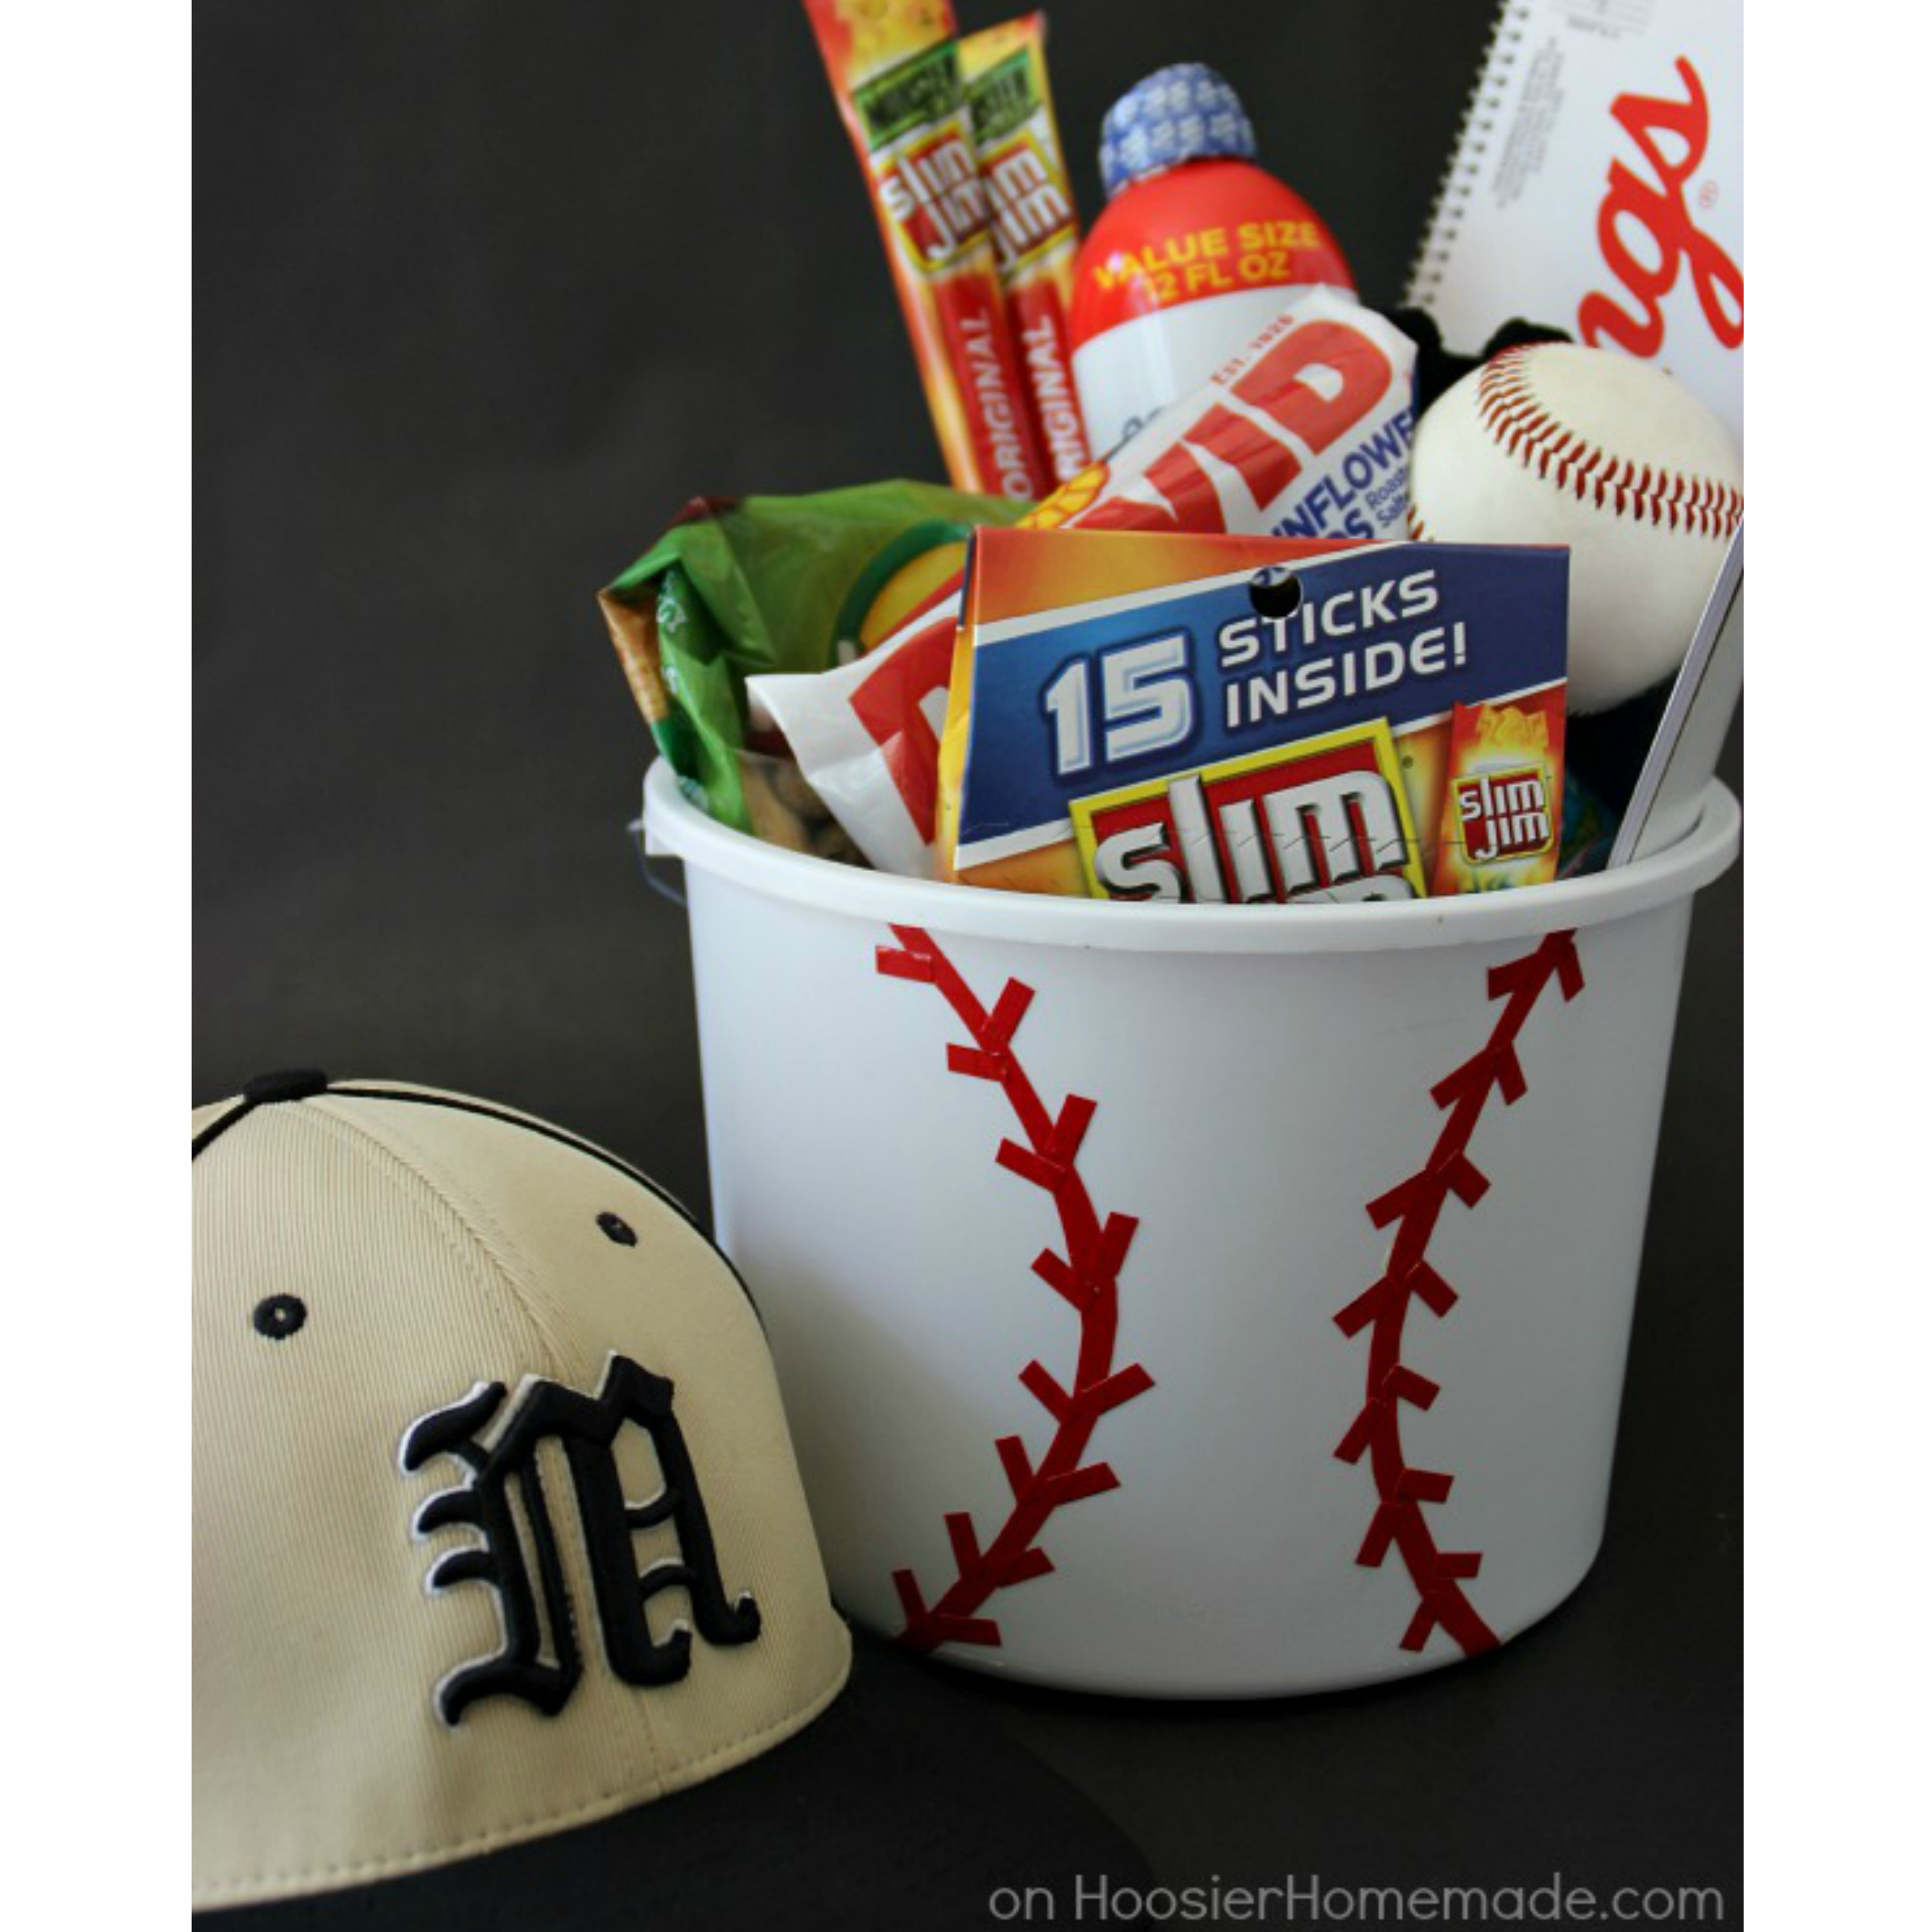 How to make gift cards more special: Create a DIY sports themed gift card bucket like this one from Hoosier Homemade.